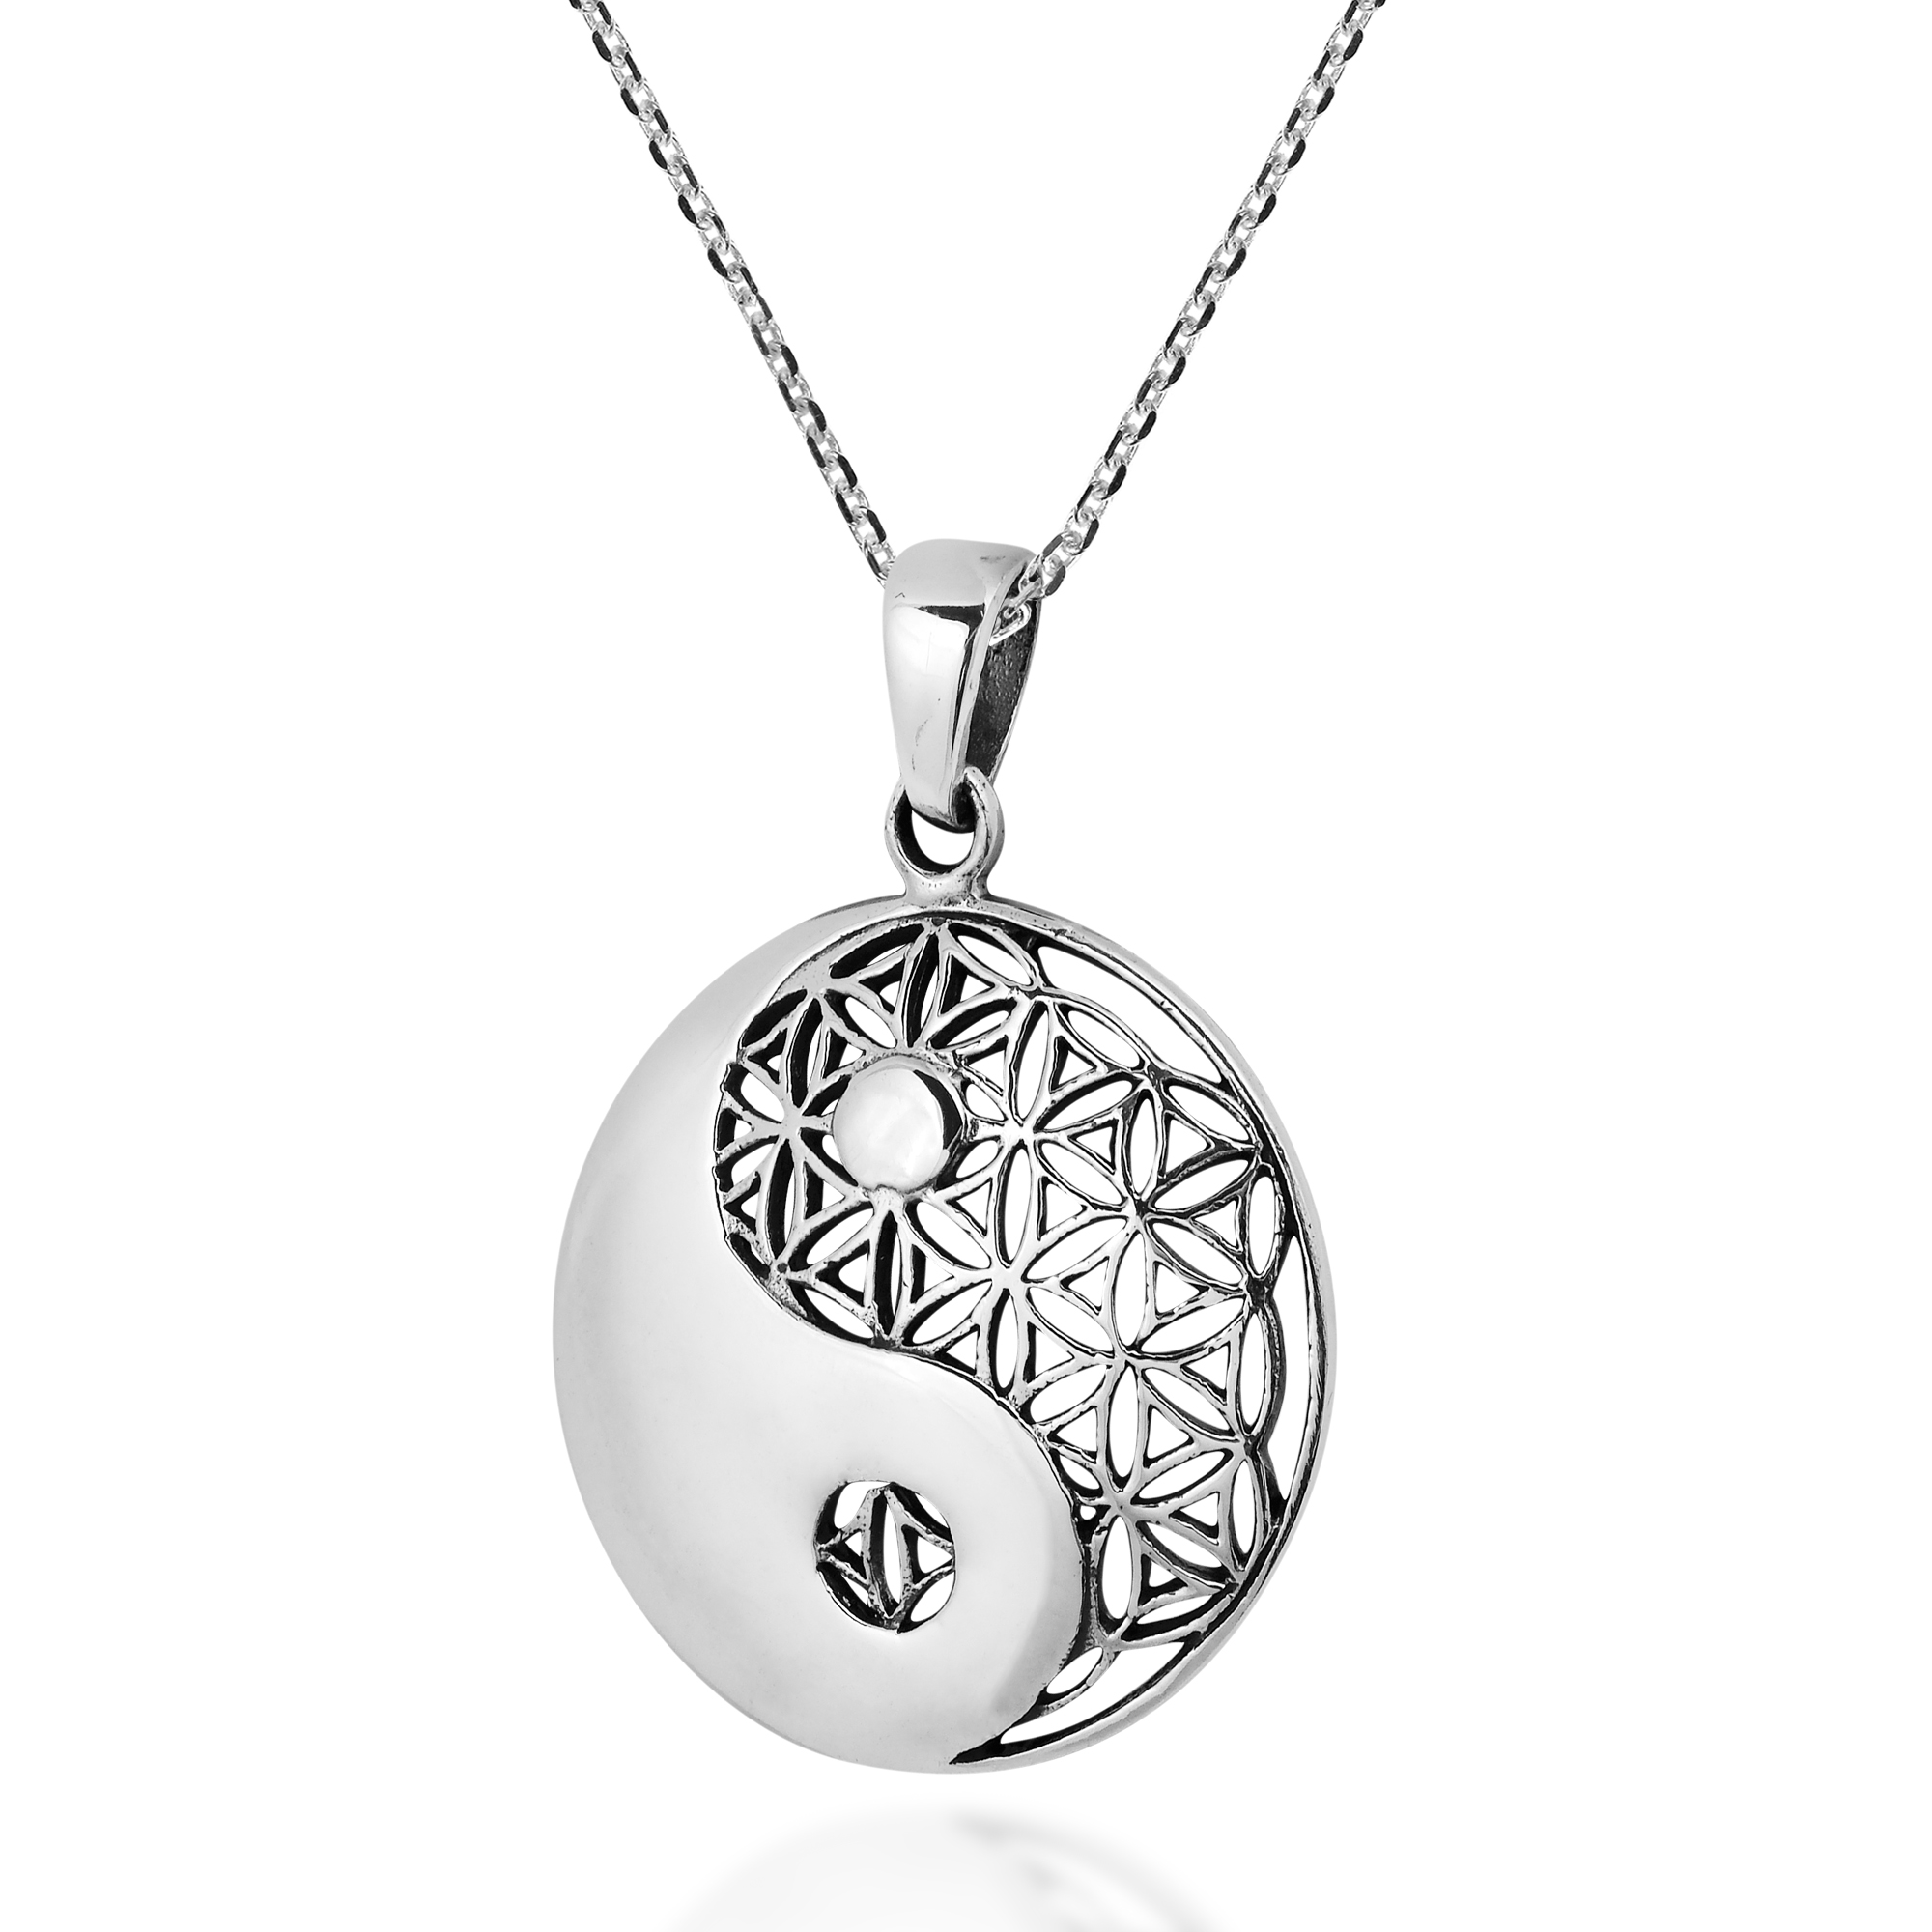 Yin Yang Balance Flower Of Life Sterling Silver Necklace